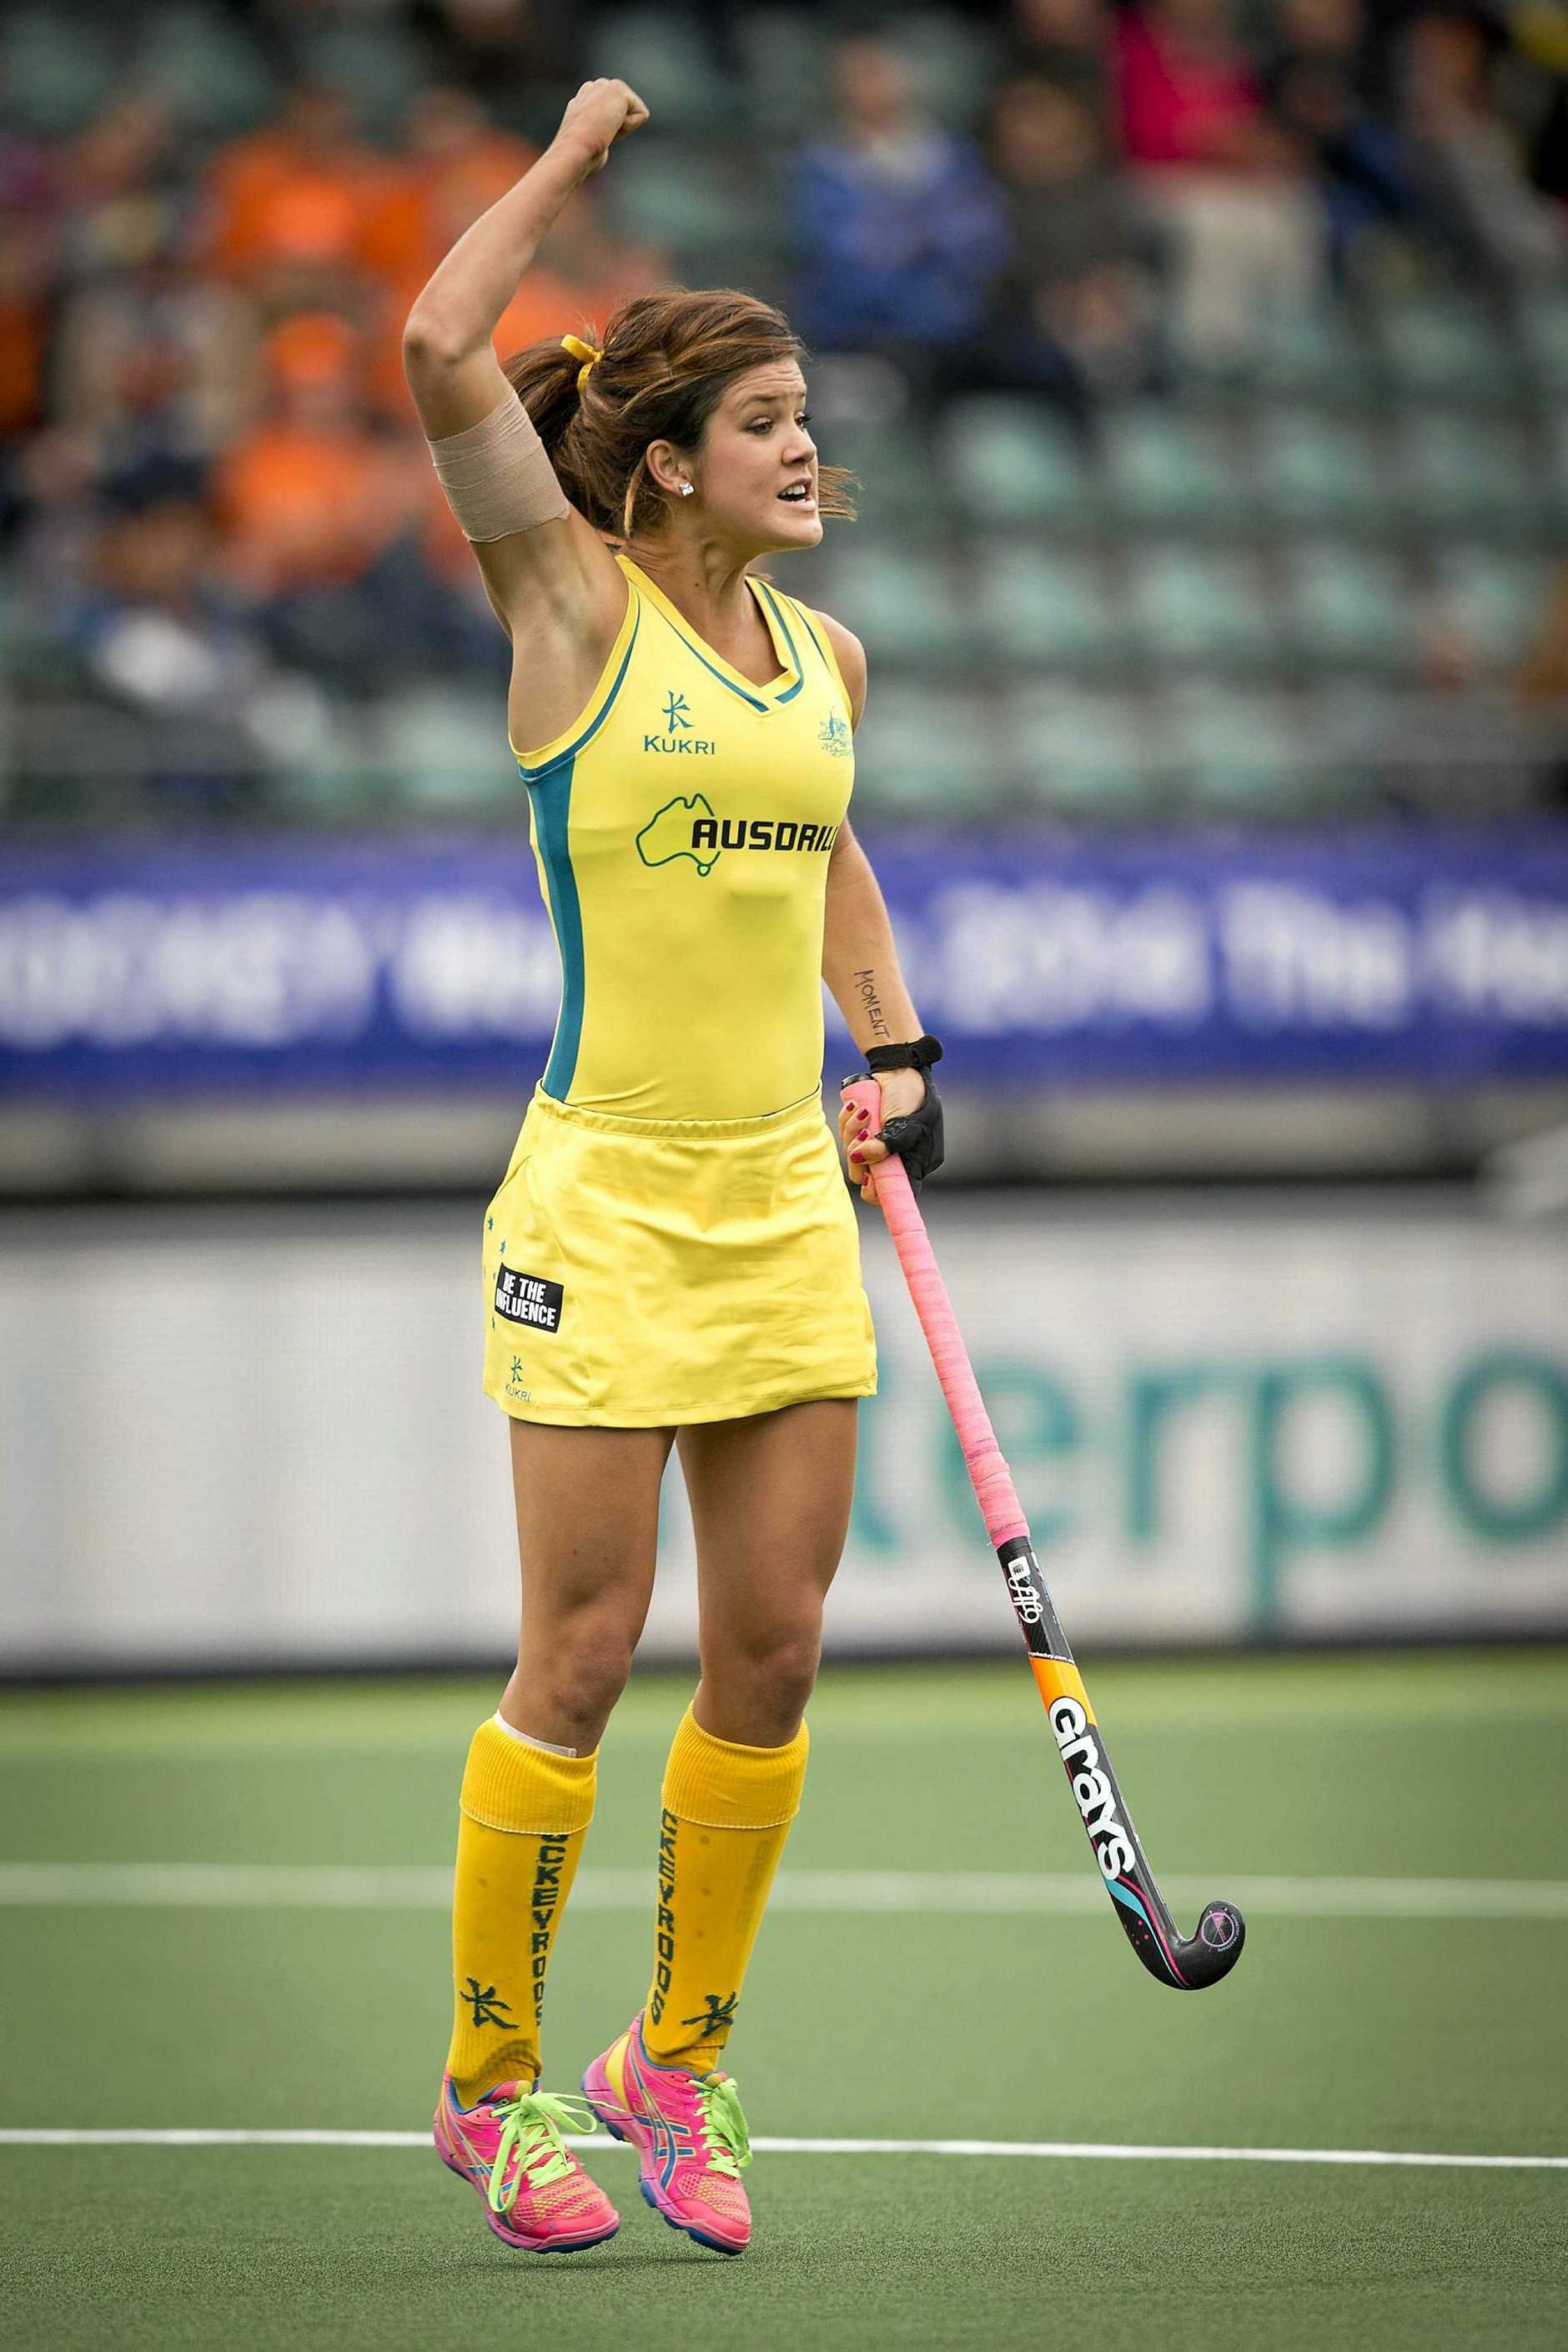 epa04240405 Anna Flanagan of Australia cheers after she scores against Belgium during a group stage match in the women's tournament of the Field Hockey World Cup in The Hague, Netherlands, 05 June 2014.  EPA/EVERT-JAN DANIELS